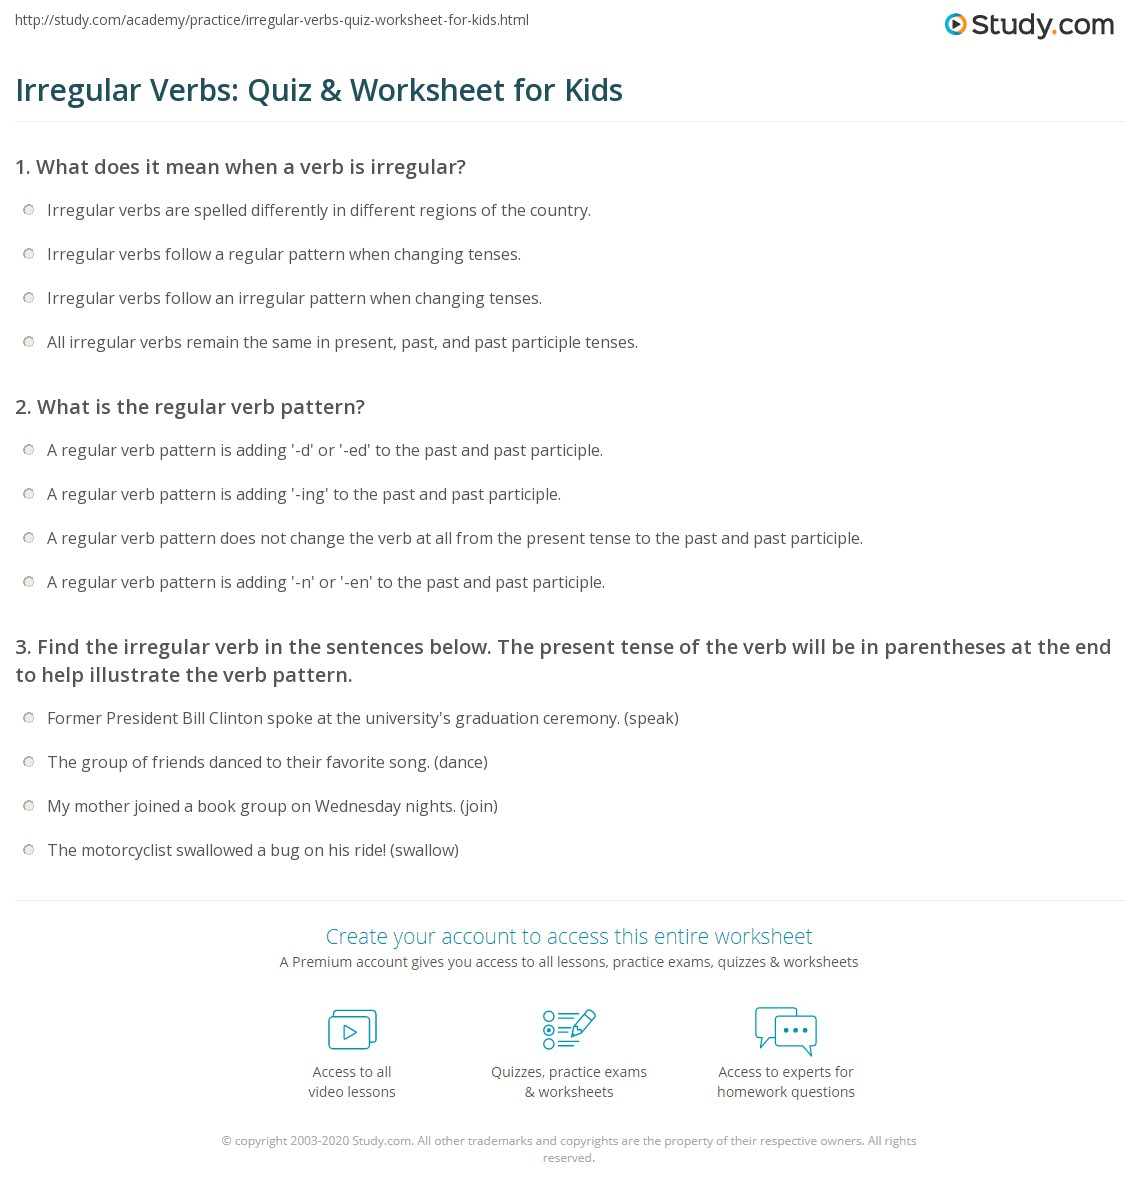 worksheet Irregular Verbs Worksheets irregular verbs quiz worksheet for kids study com print lesson worksheet